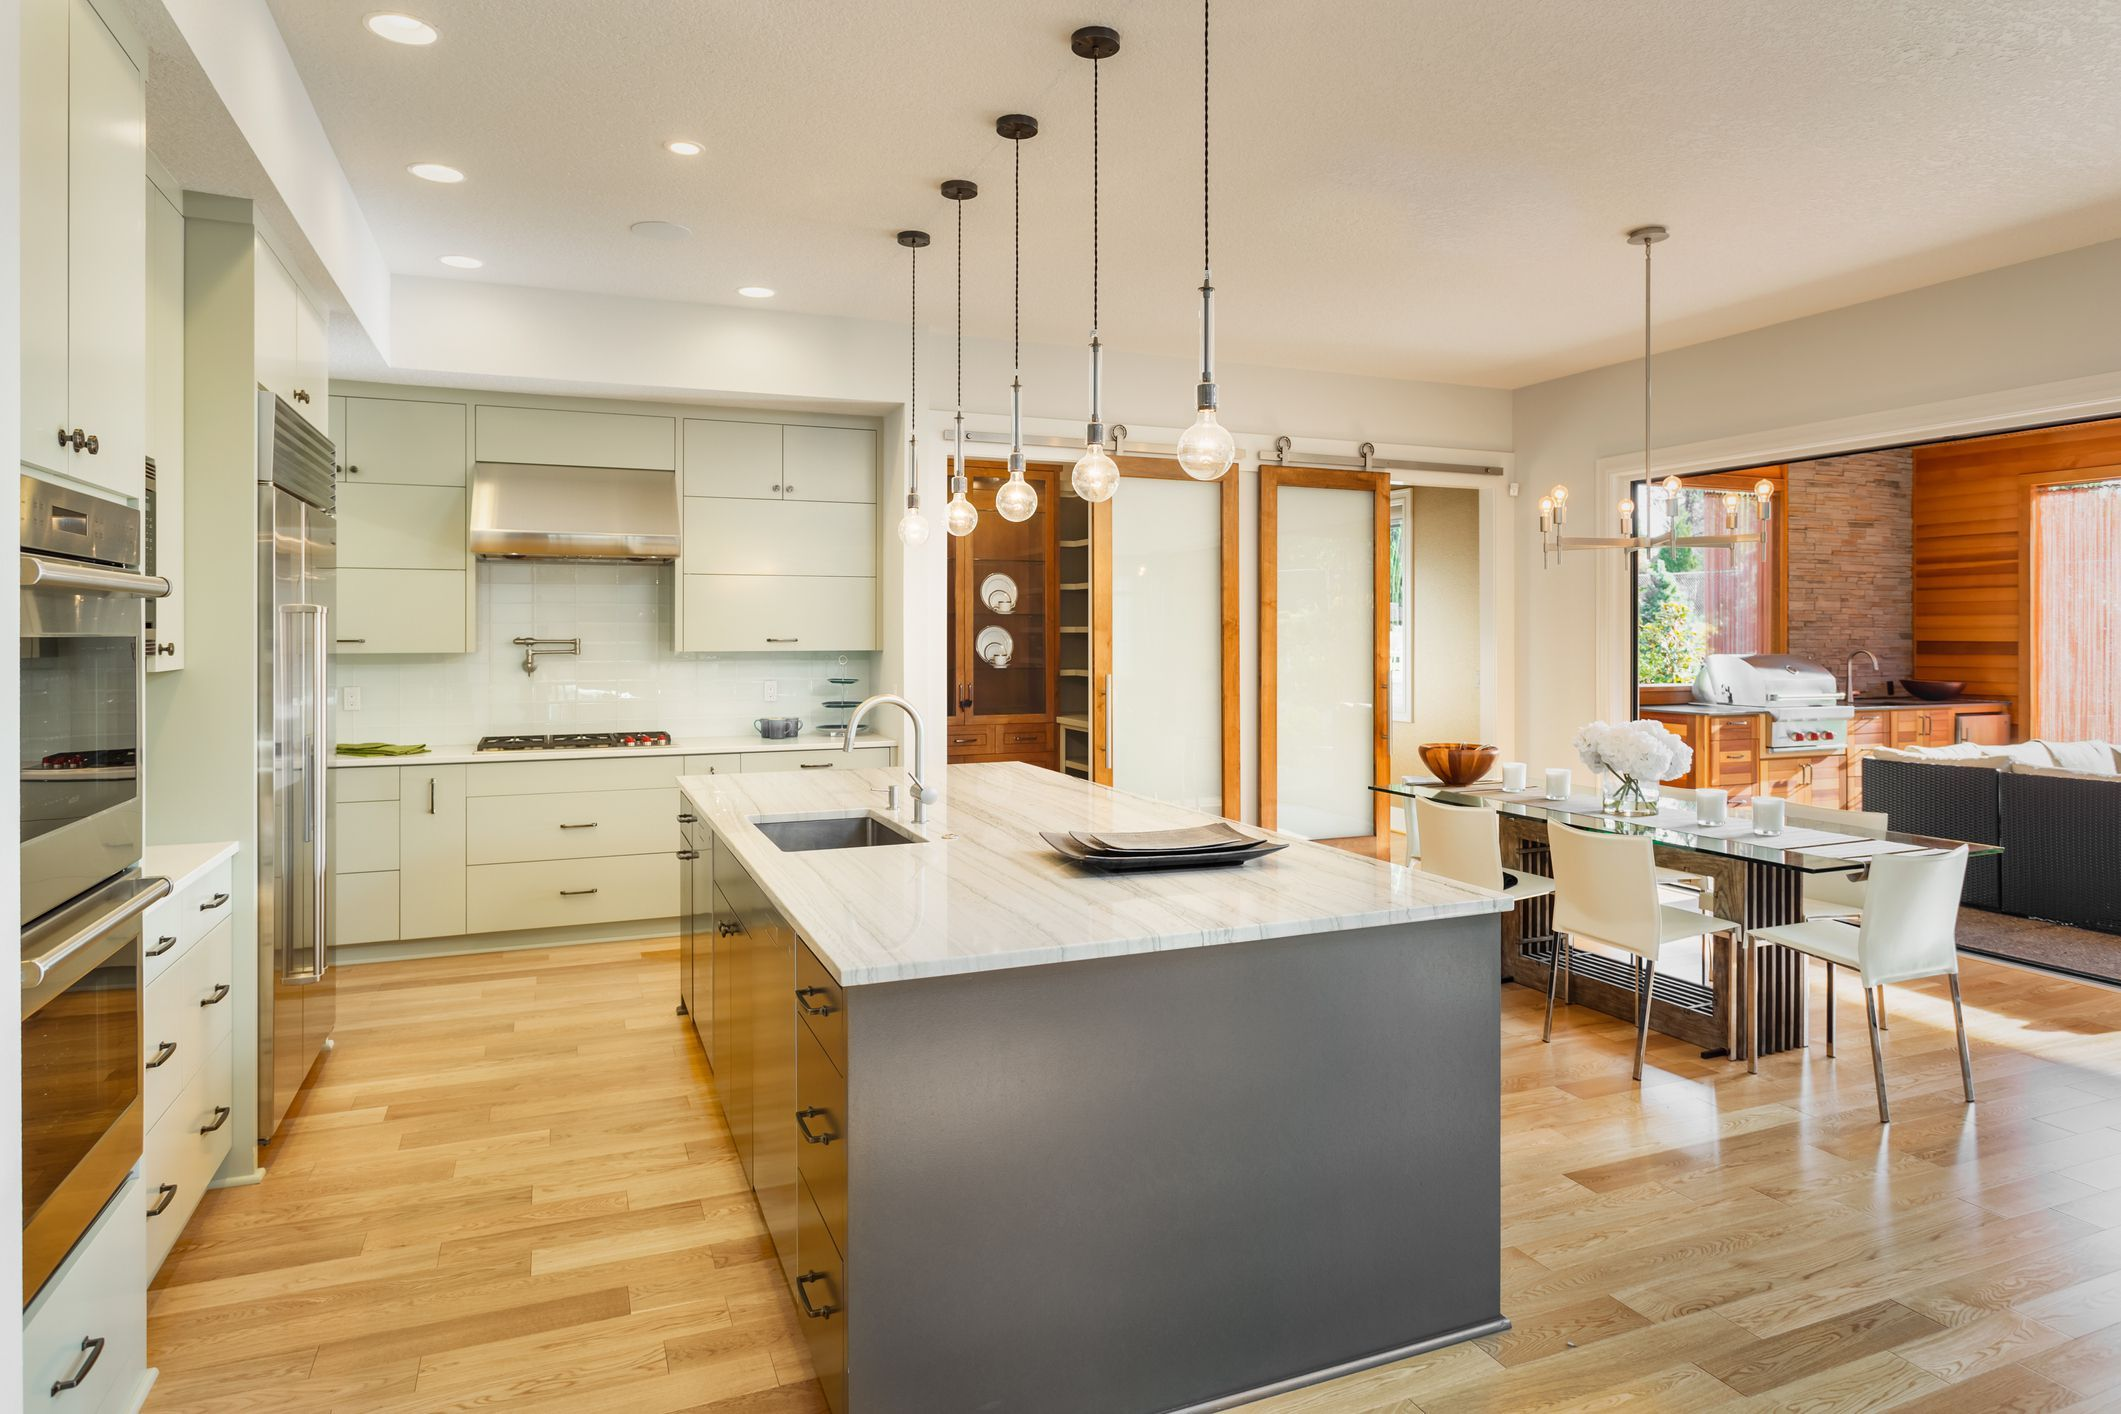 What Are the Top Types of Kitchen Flooring | Types of kitchen flooring,  Outdoor kitchen design, Luxury kitchens